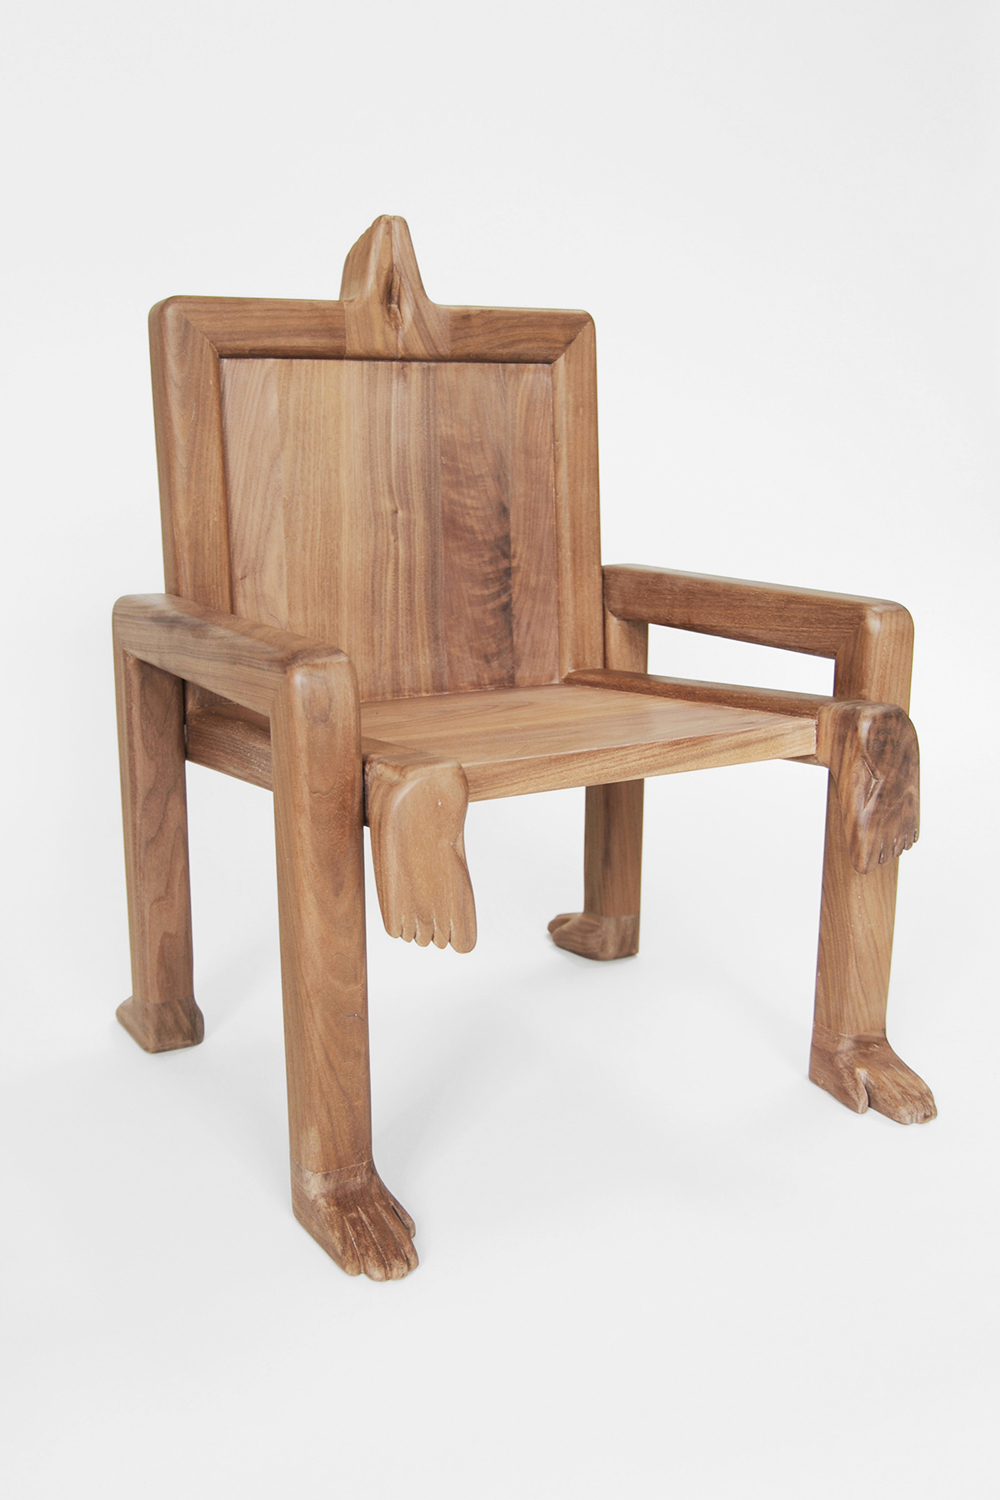 CRAWL CHAIR, 2015 WAXED WALNUT  PDF  -  INQUIRE  +  MORE